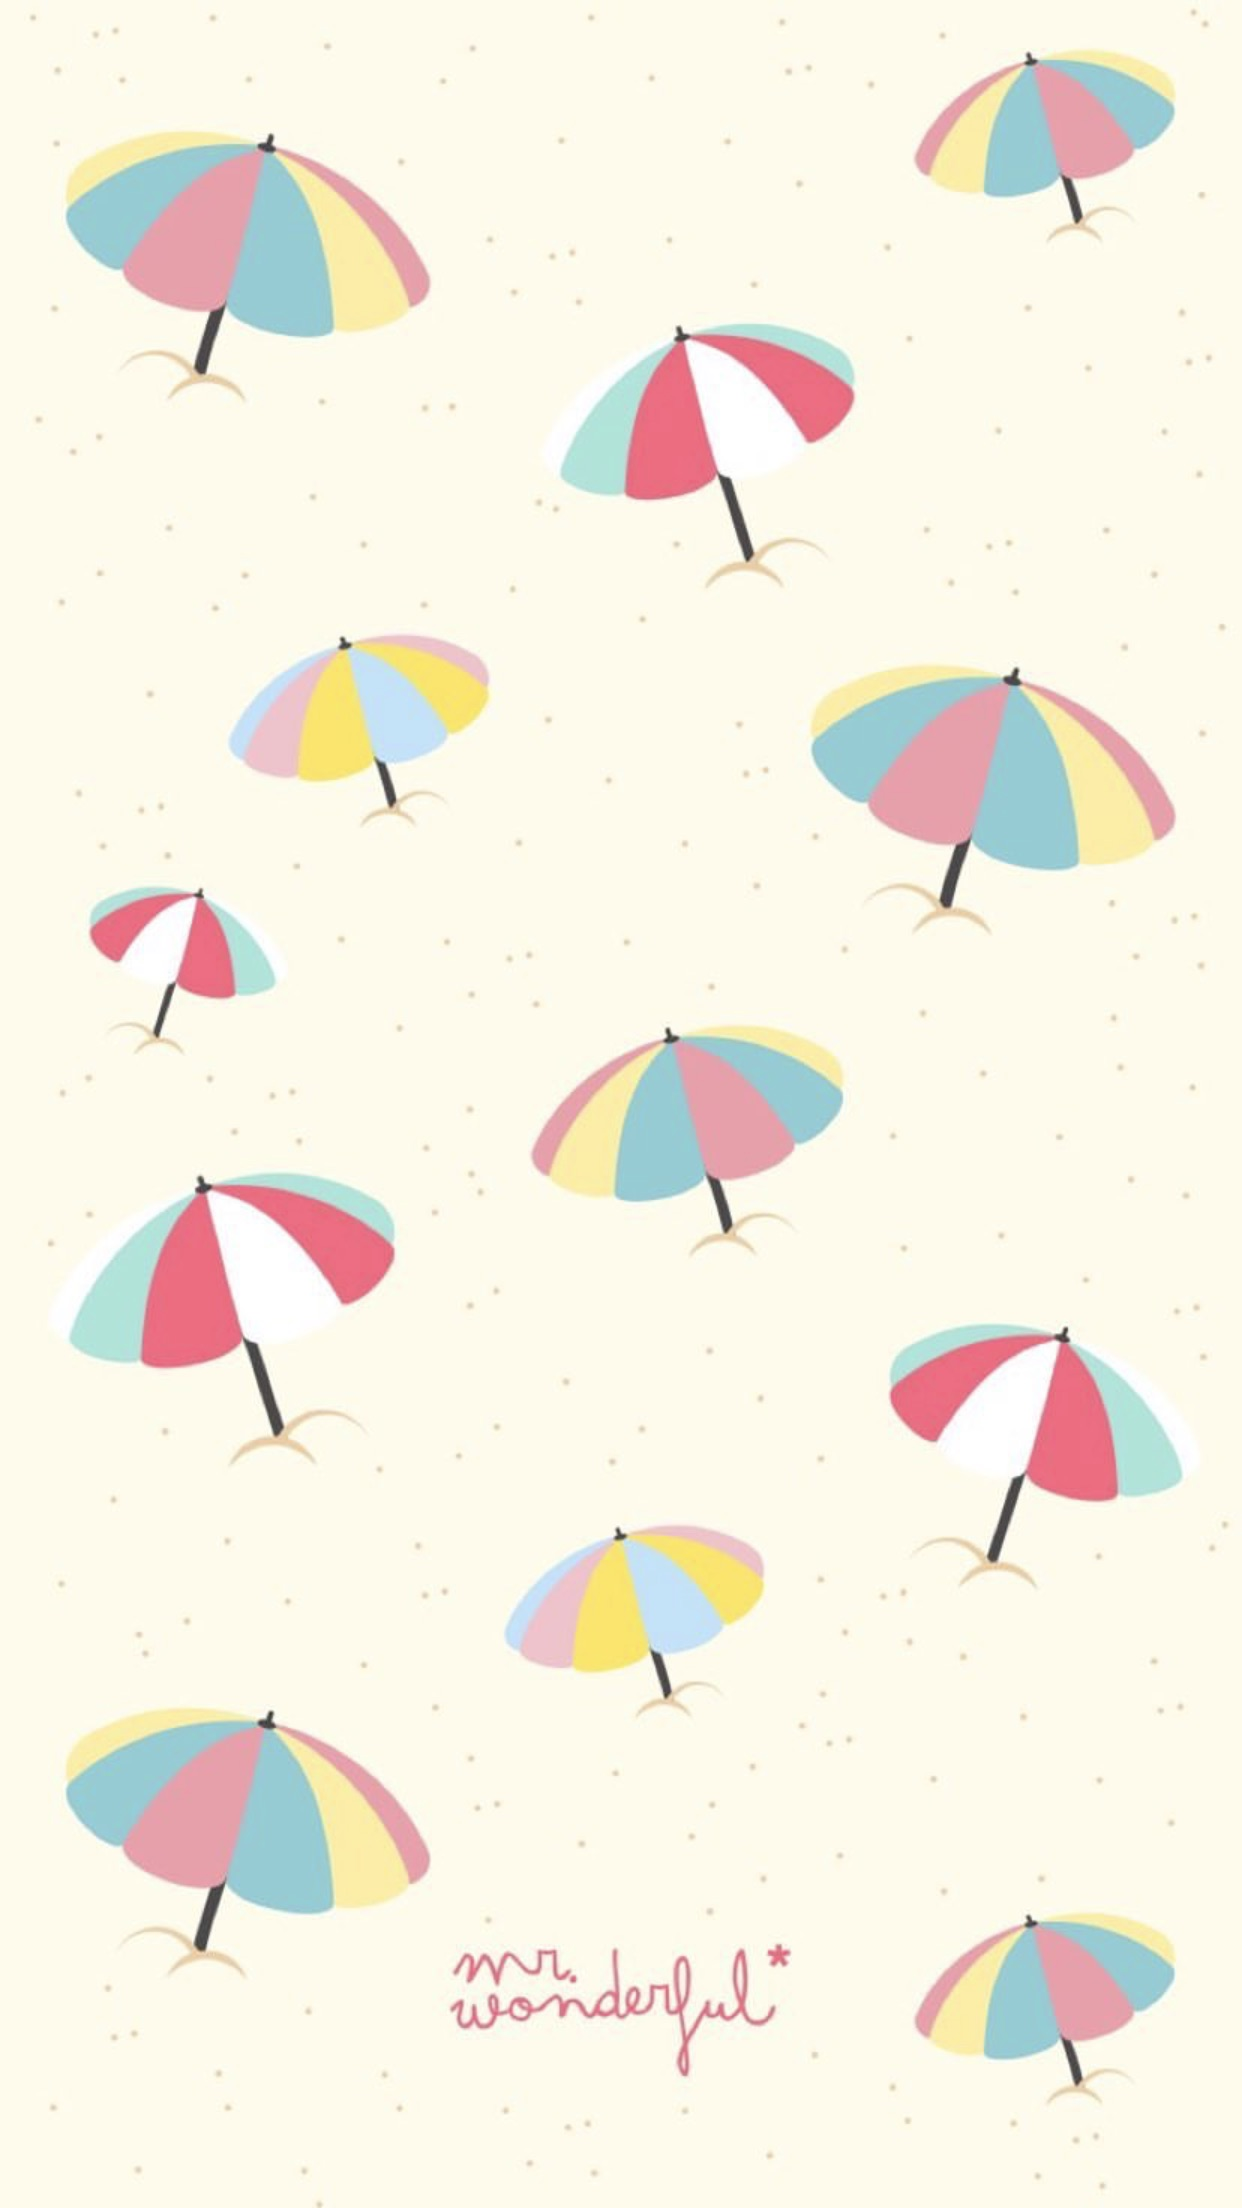 fondos de pantalla, fondo de pantalla, fondo de pantalla divertido, fondo de pantalla femenino, girly backgrounds, cool background, colorful backfround, fondo de pantalla patron, pattern, fondo de pantalla verano, fondo de pantalla paraguas, umbrella background. autumn background, fondo de pantalla otoño.